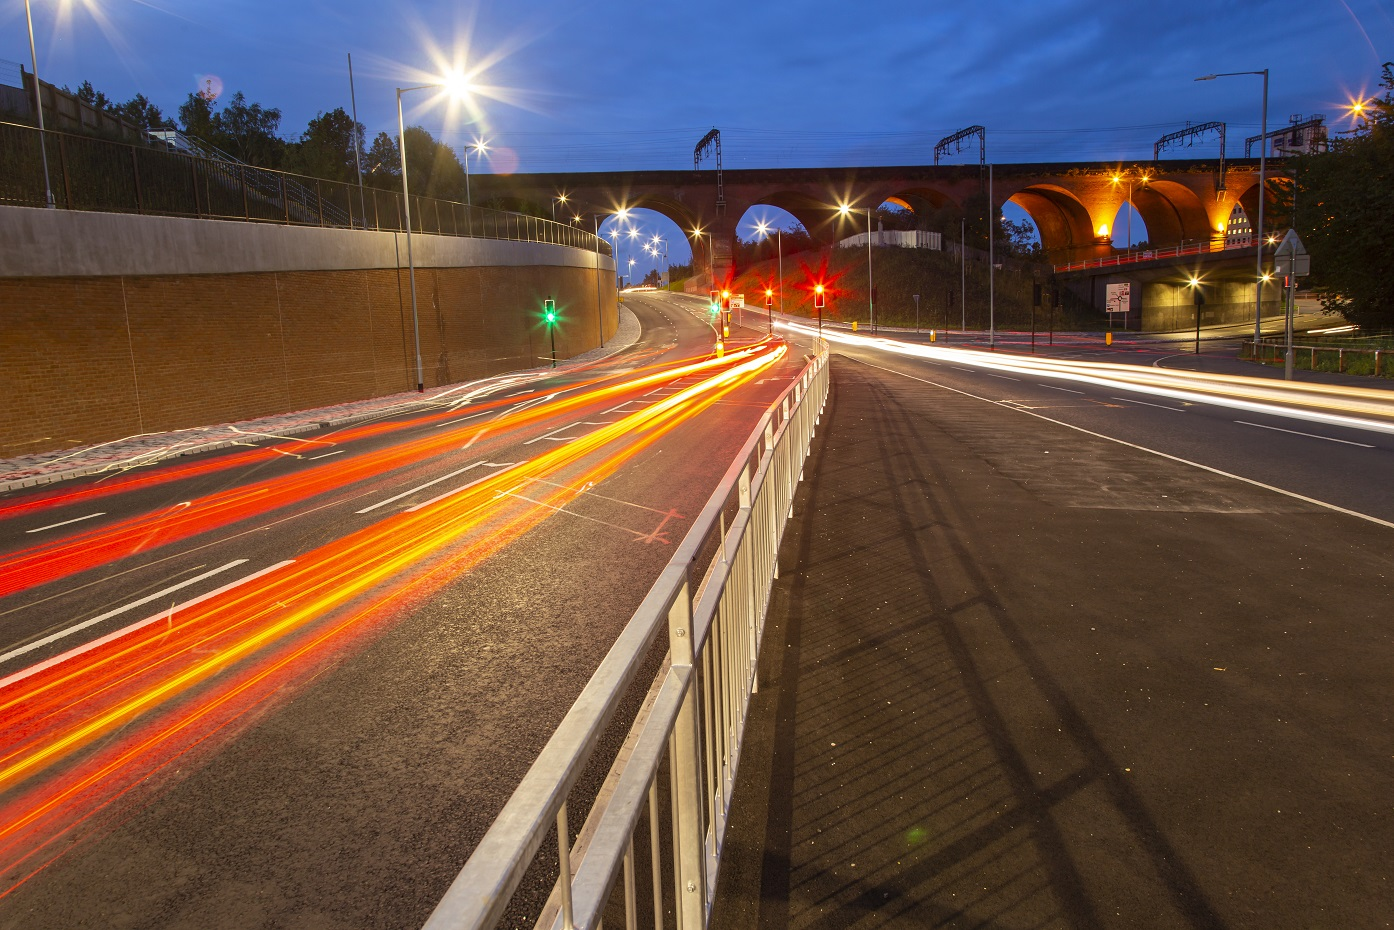 GRAHAM completes major new £8m link road for Stockport Council